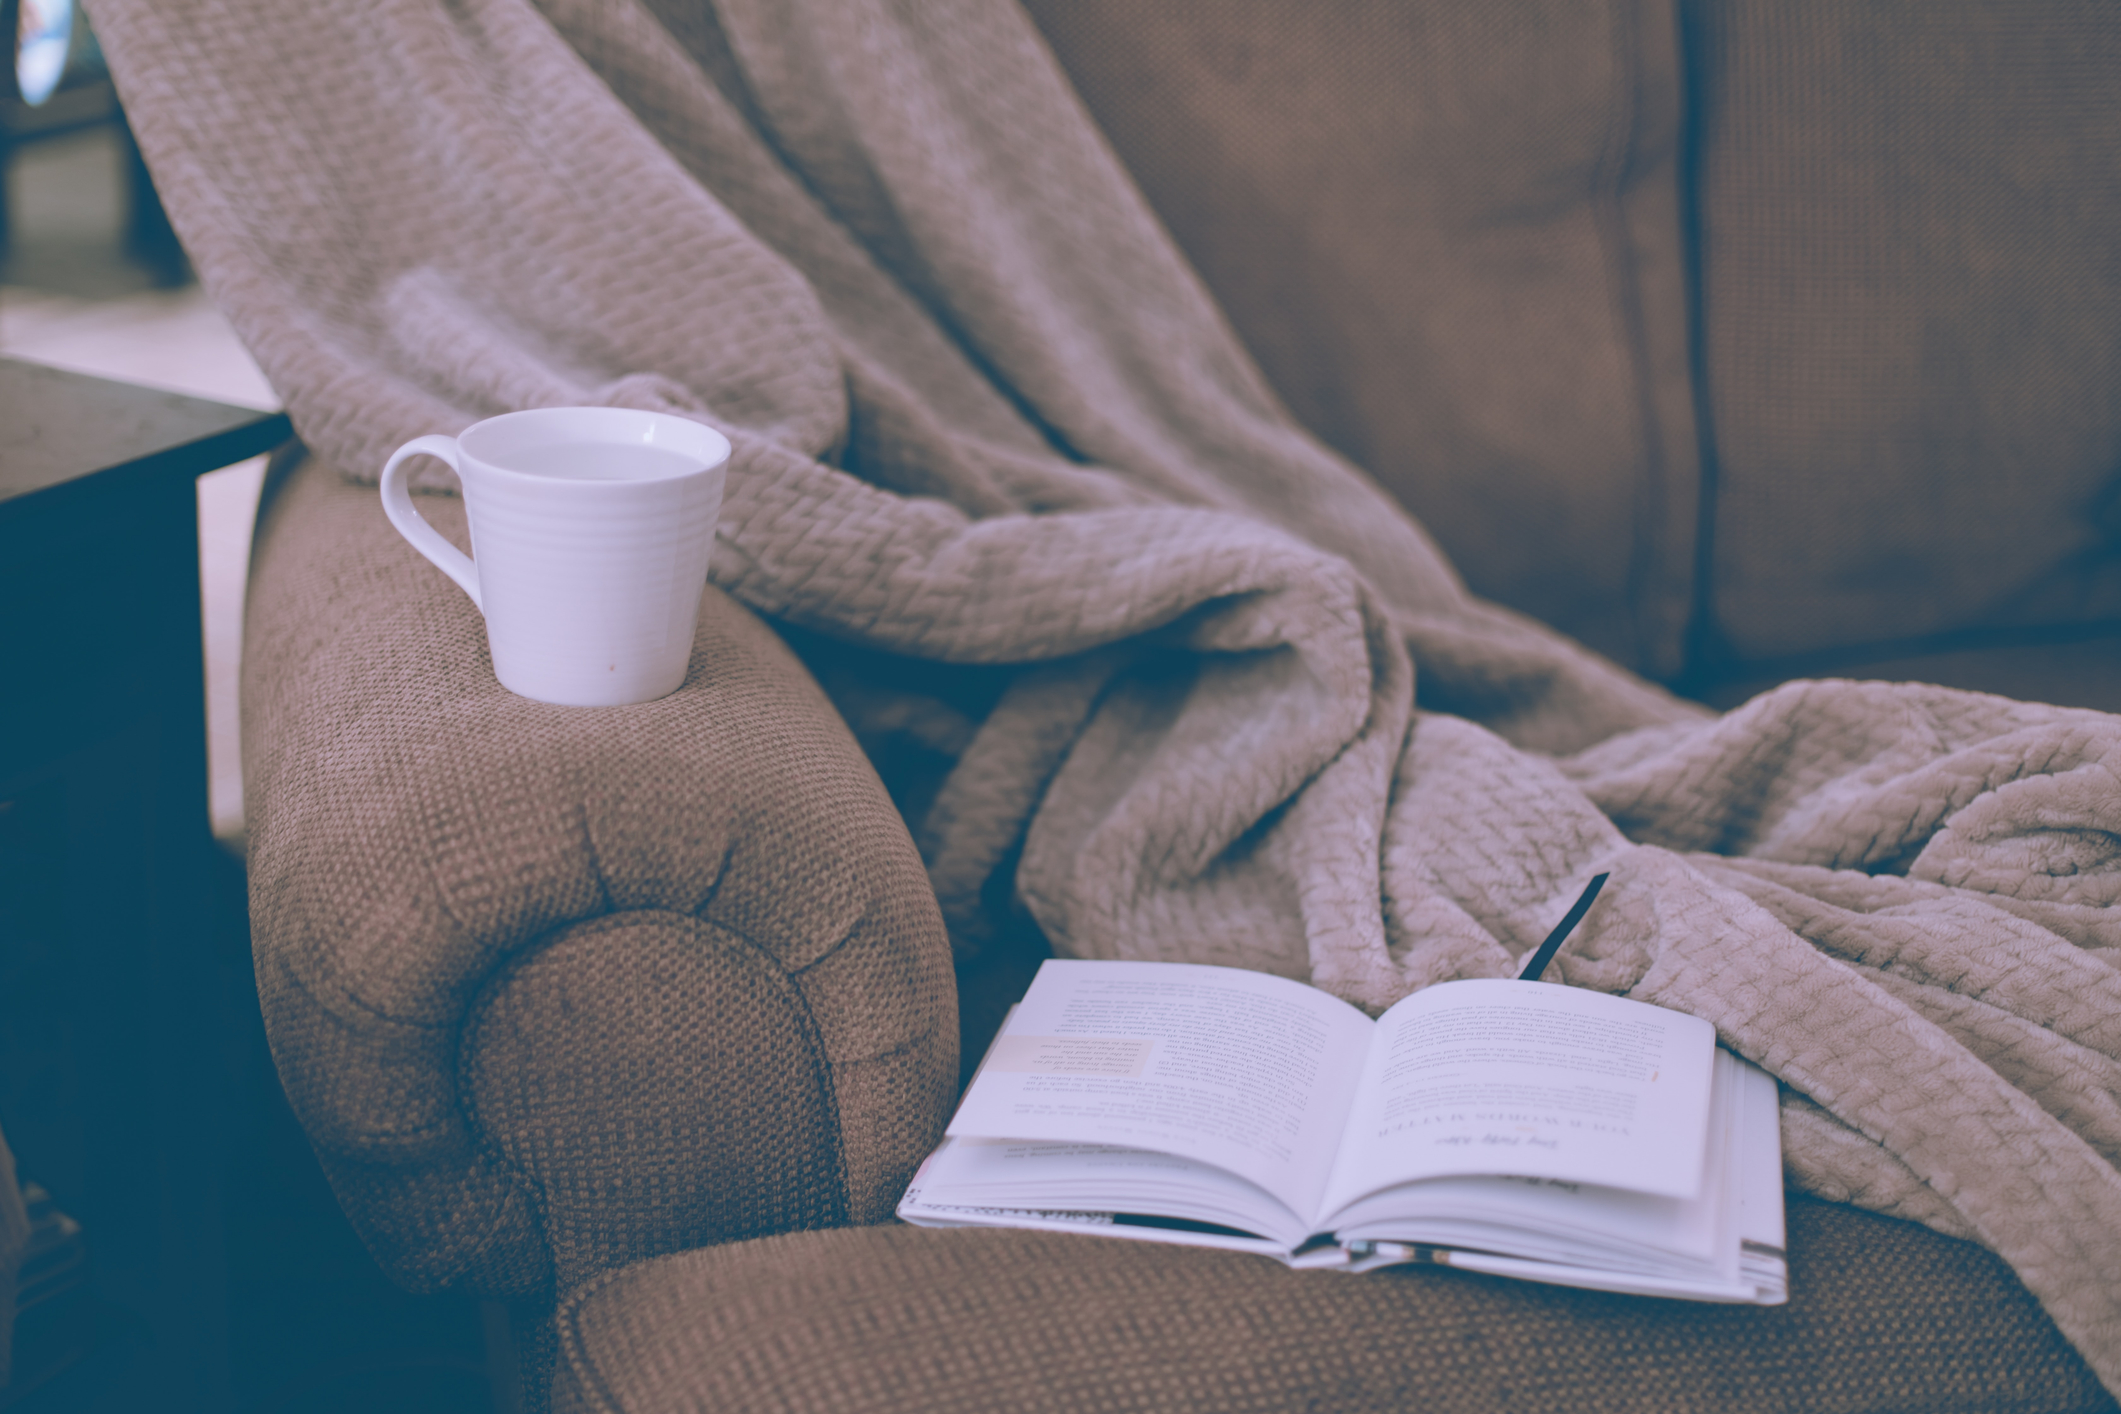 cosy image of a blanket book and mug on a sofa